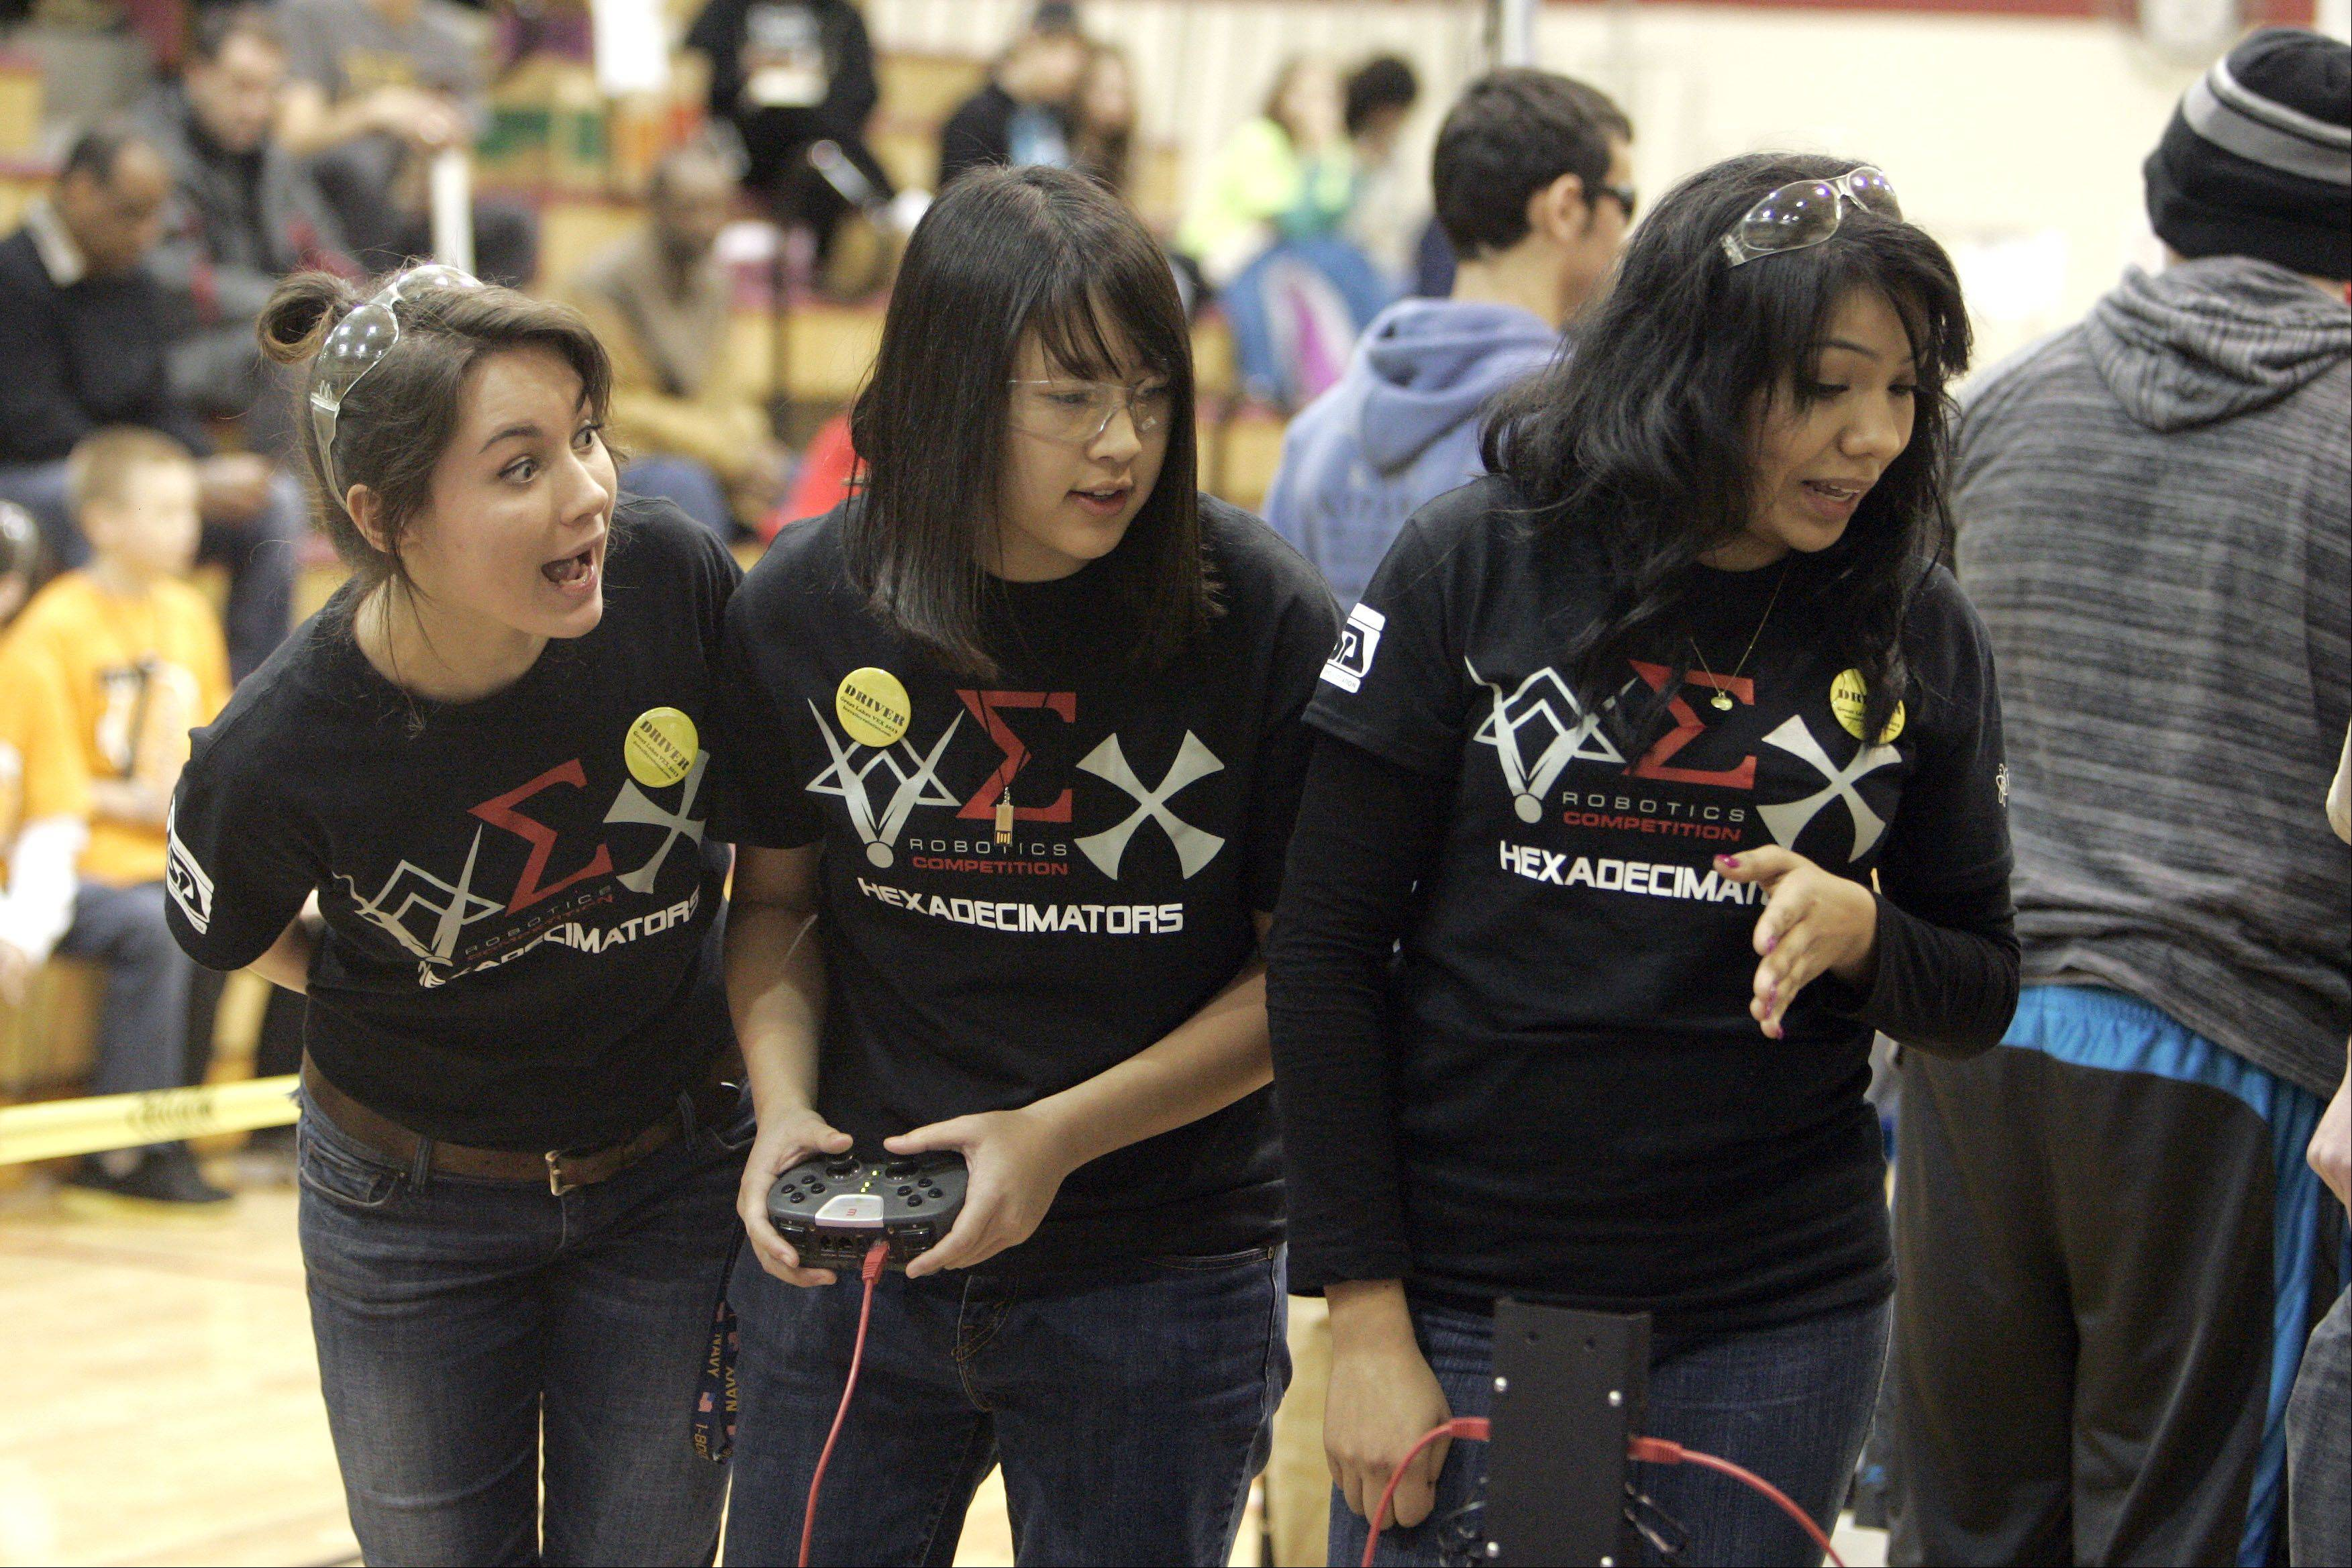 Brian Hill/bhill@dailyherald.comSophomore Madeline Koldos, from left, Thida Vonguilay, and Lissette Beltran, both seniors, of the Hex Adecimators of Bartlett High School discuss the intricate movements of their robot during the competition. The competition included 48 teams from the Midwest.